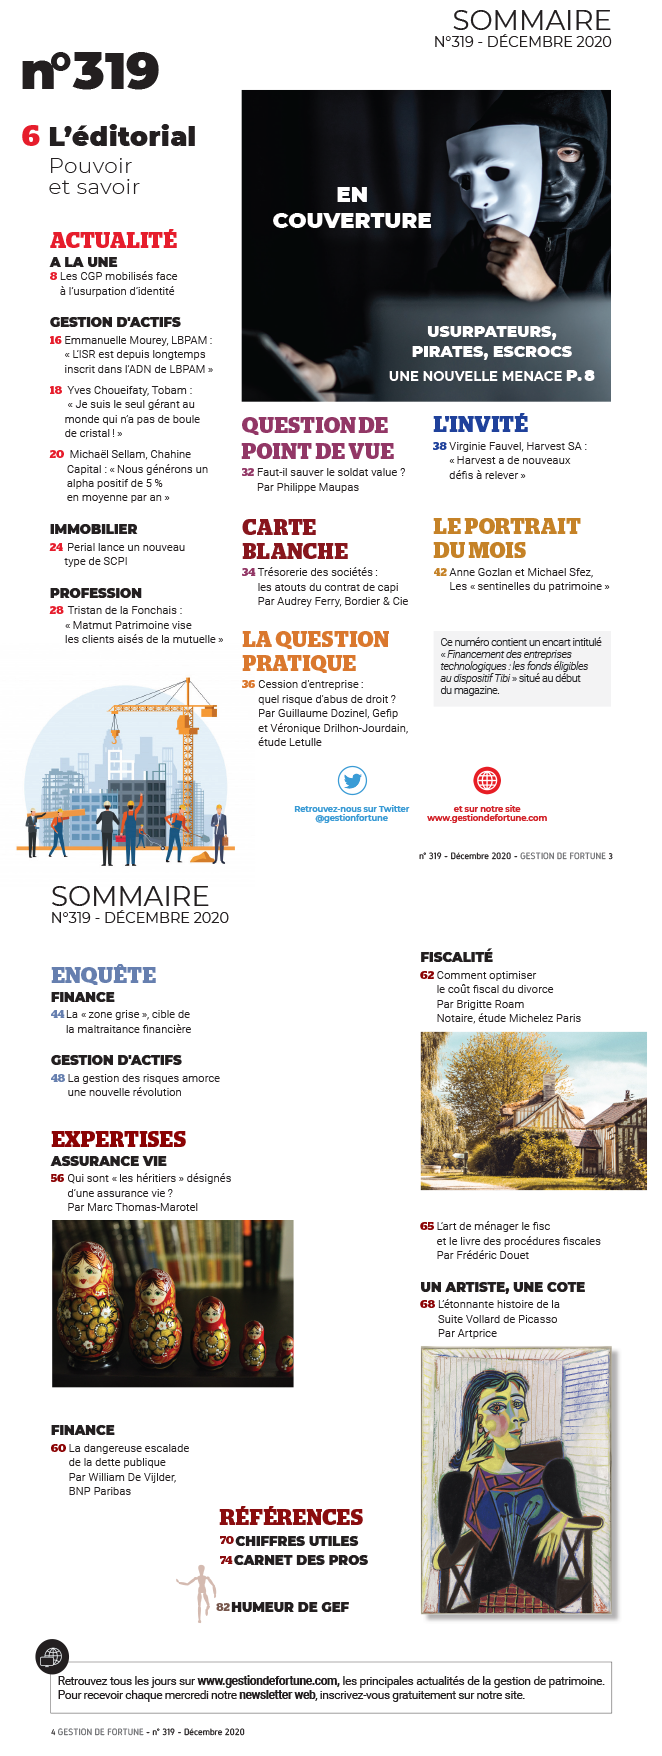 201201_sommaire